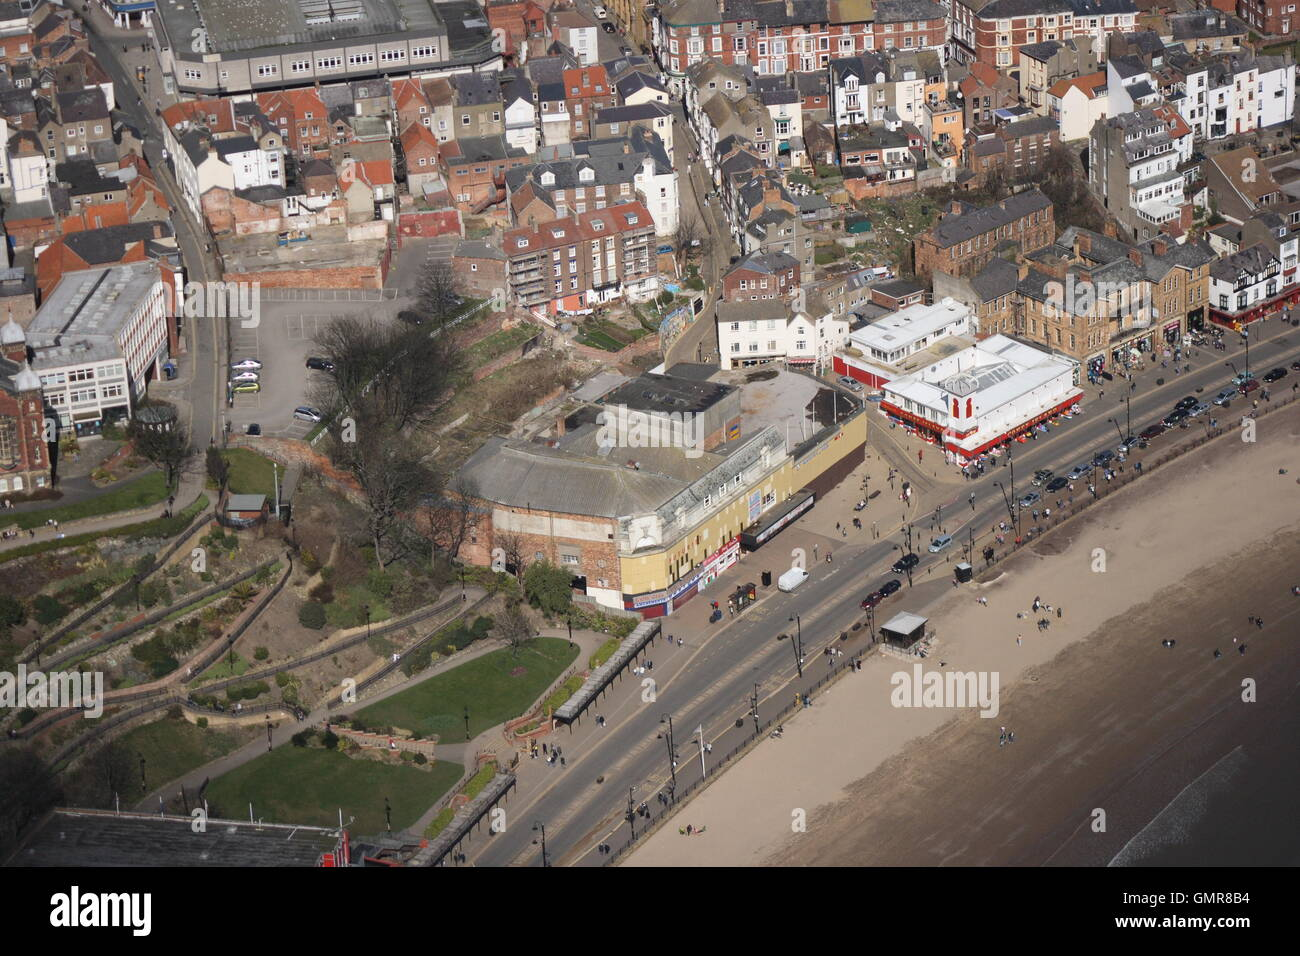 Aerial photo of Scarborough Futurist Theatre and seafront with St Nicholas Cliff Gardens - Stock Image